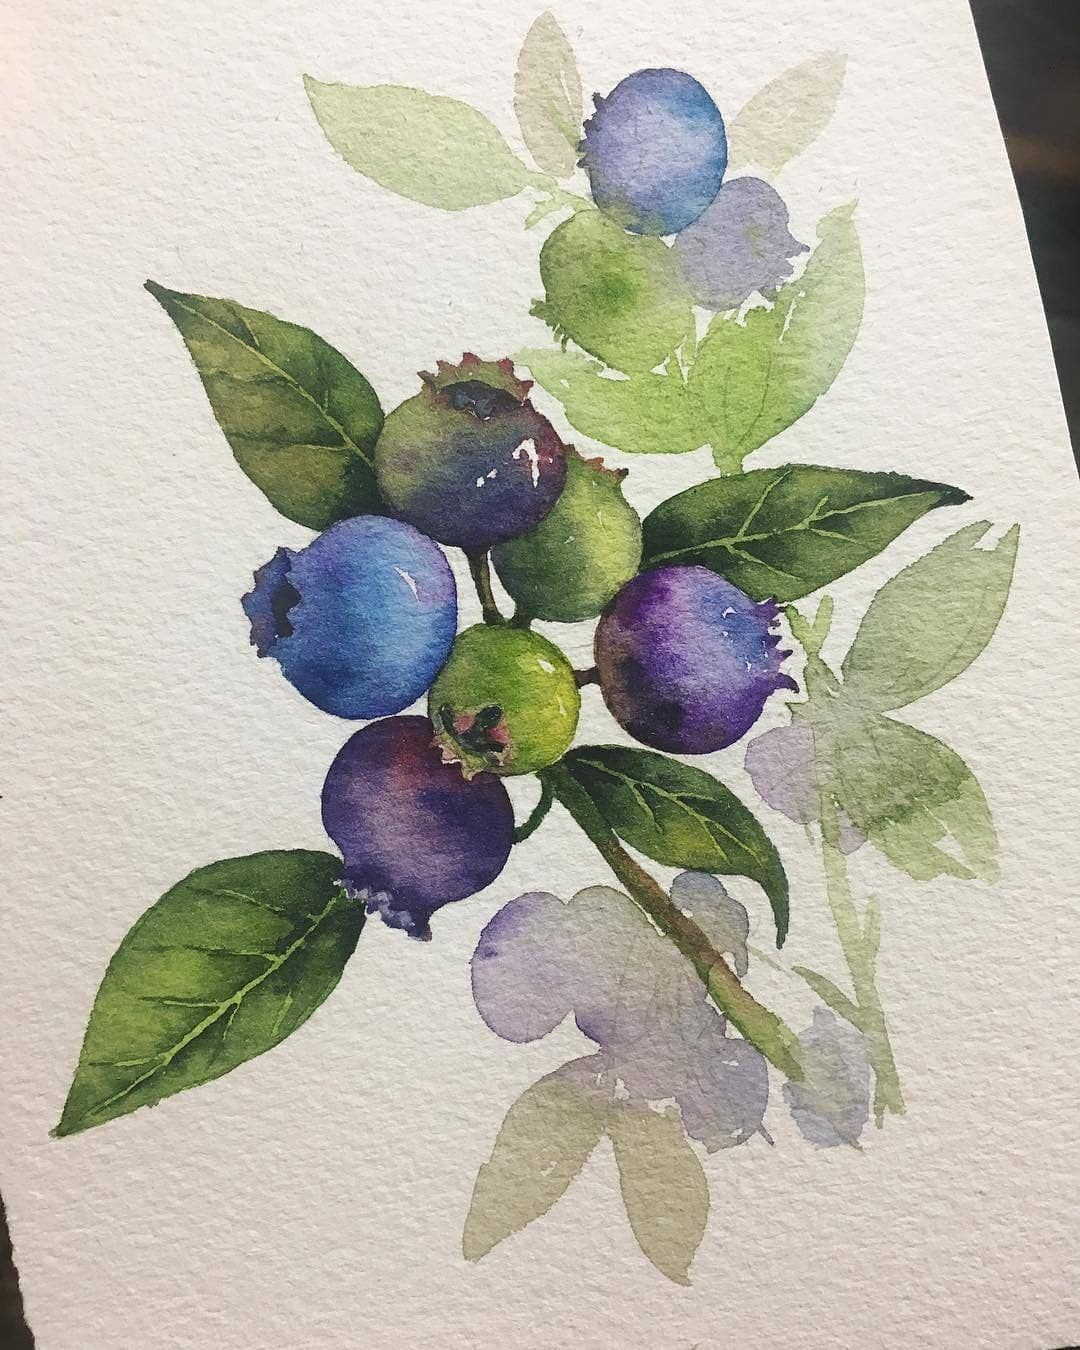 Best Watercolor Art On Instagram Comment Your Favourite